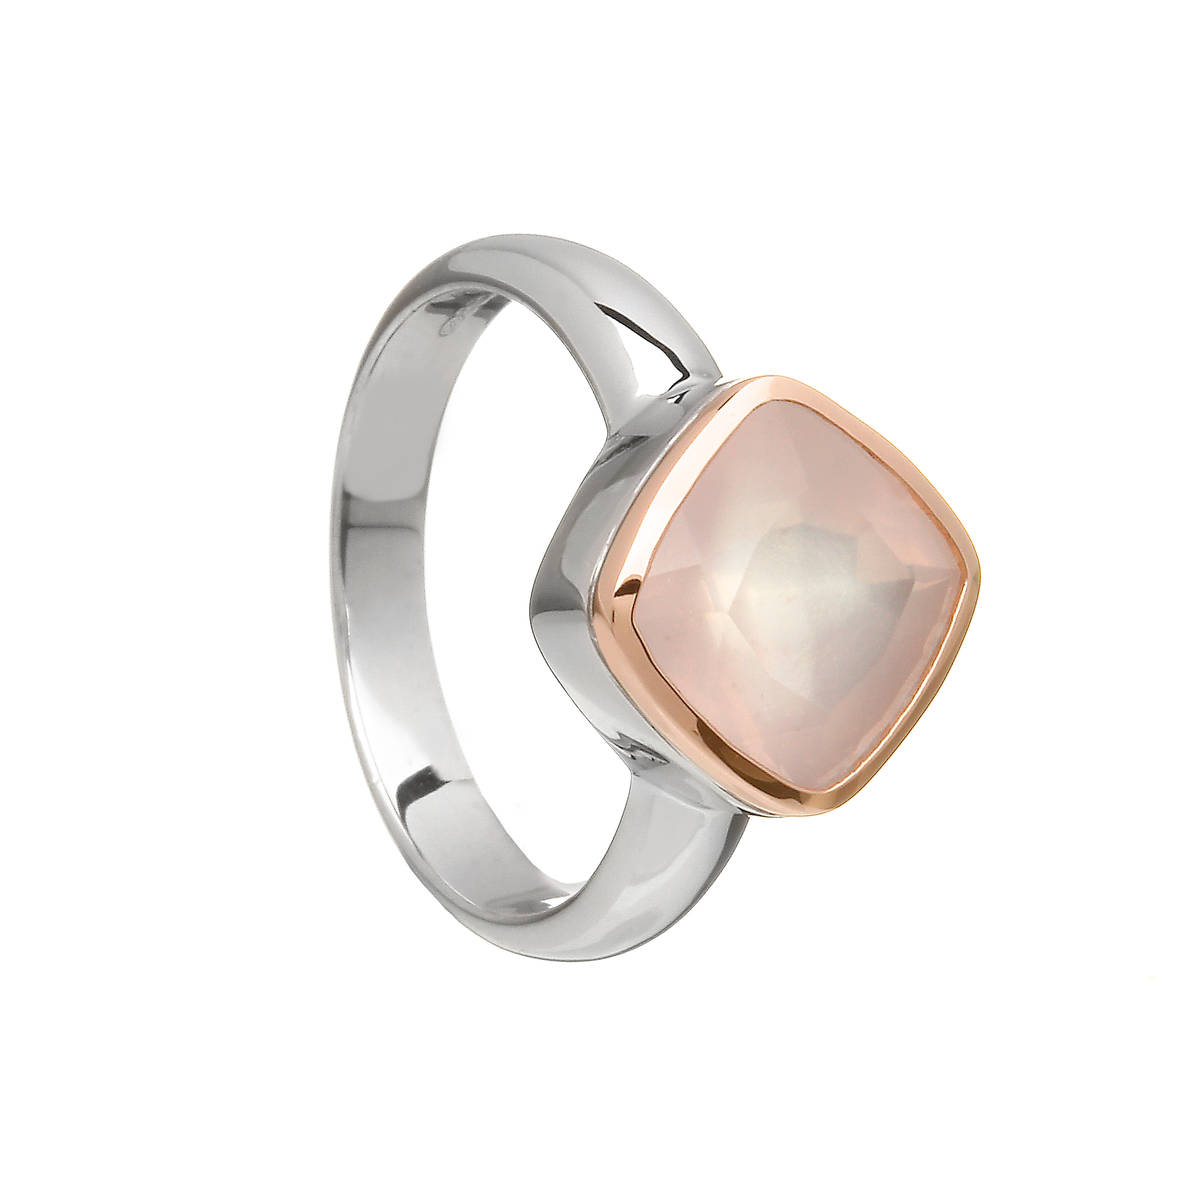 sterling silver and Irish rose gold ring with pink quartz diamond shape checkerboard cabochon